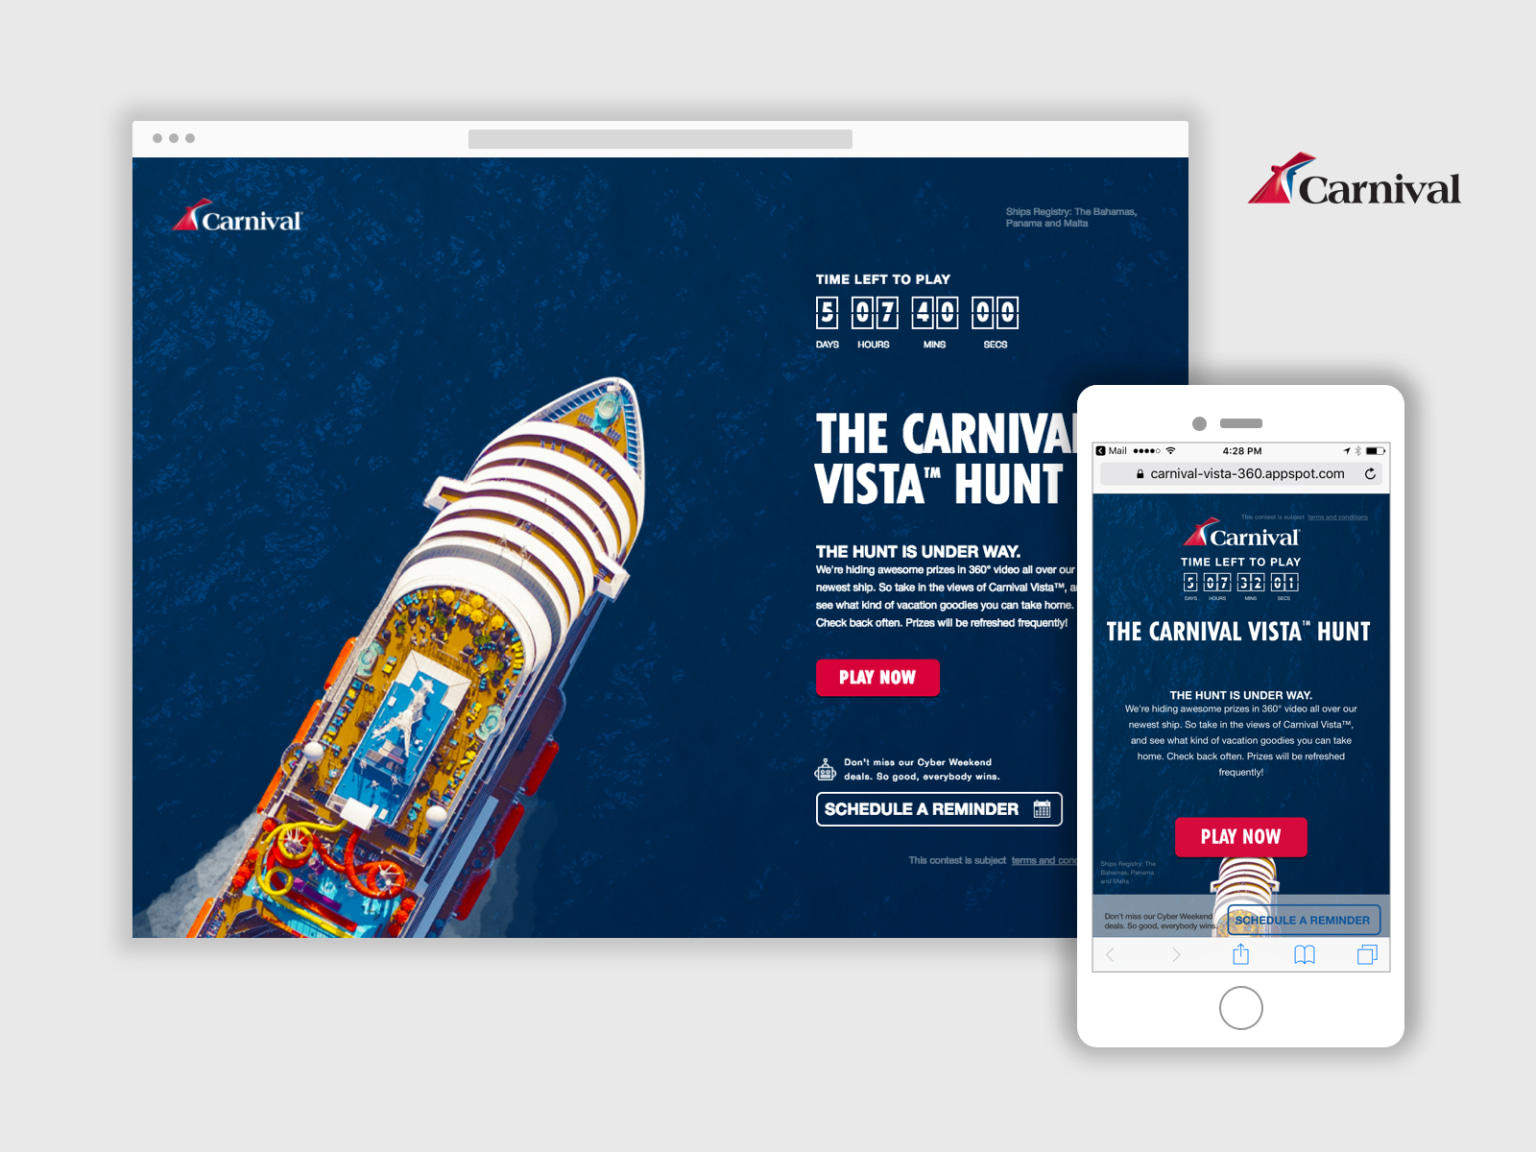 Carnival Cruise Lines - Instant Vacation